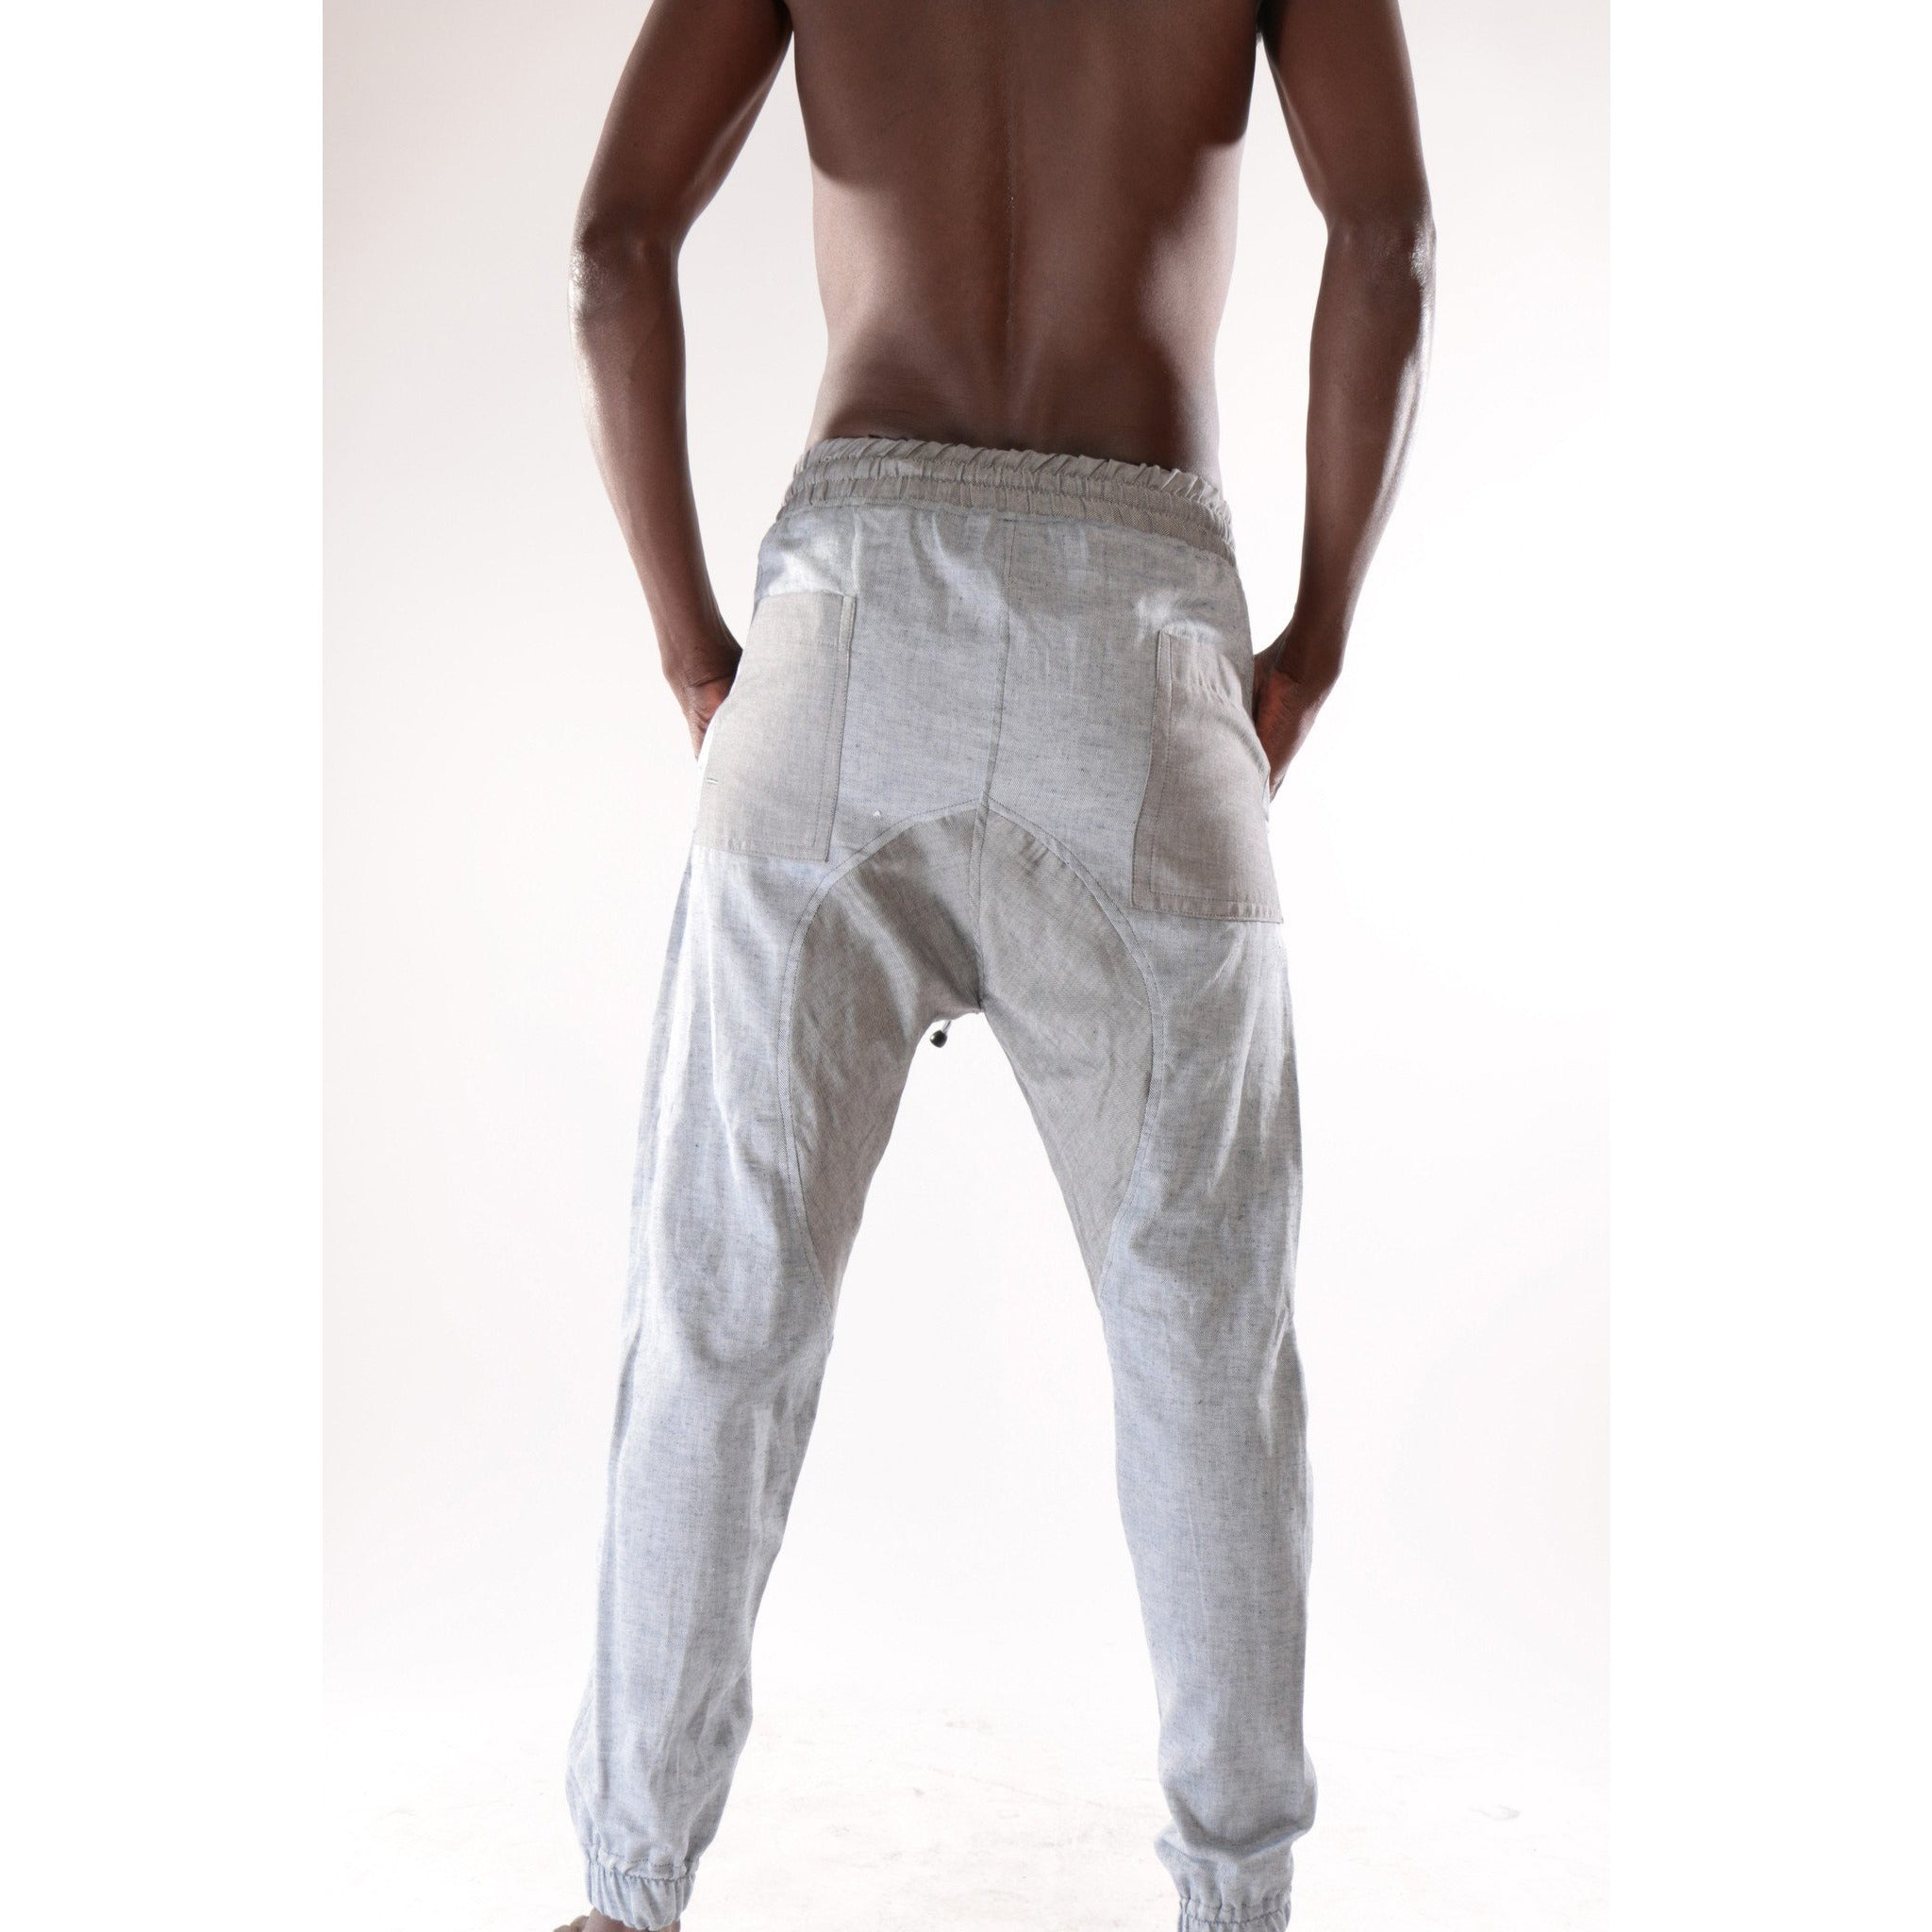 Classic fashion harem pant with grey and sky blue pattern